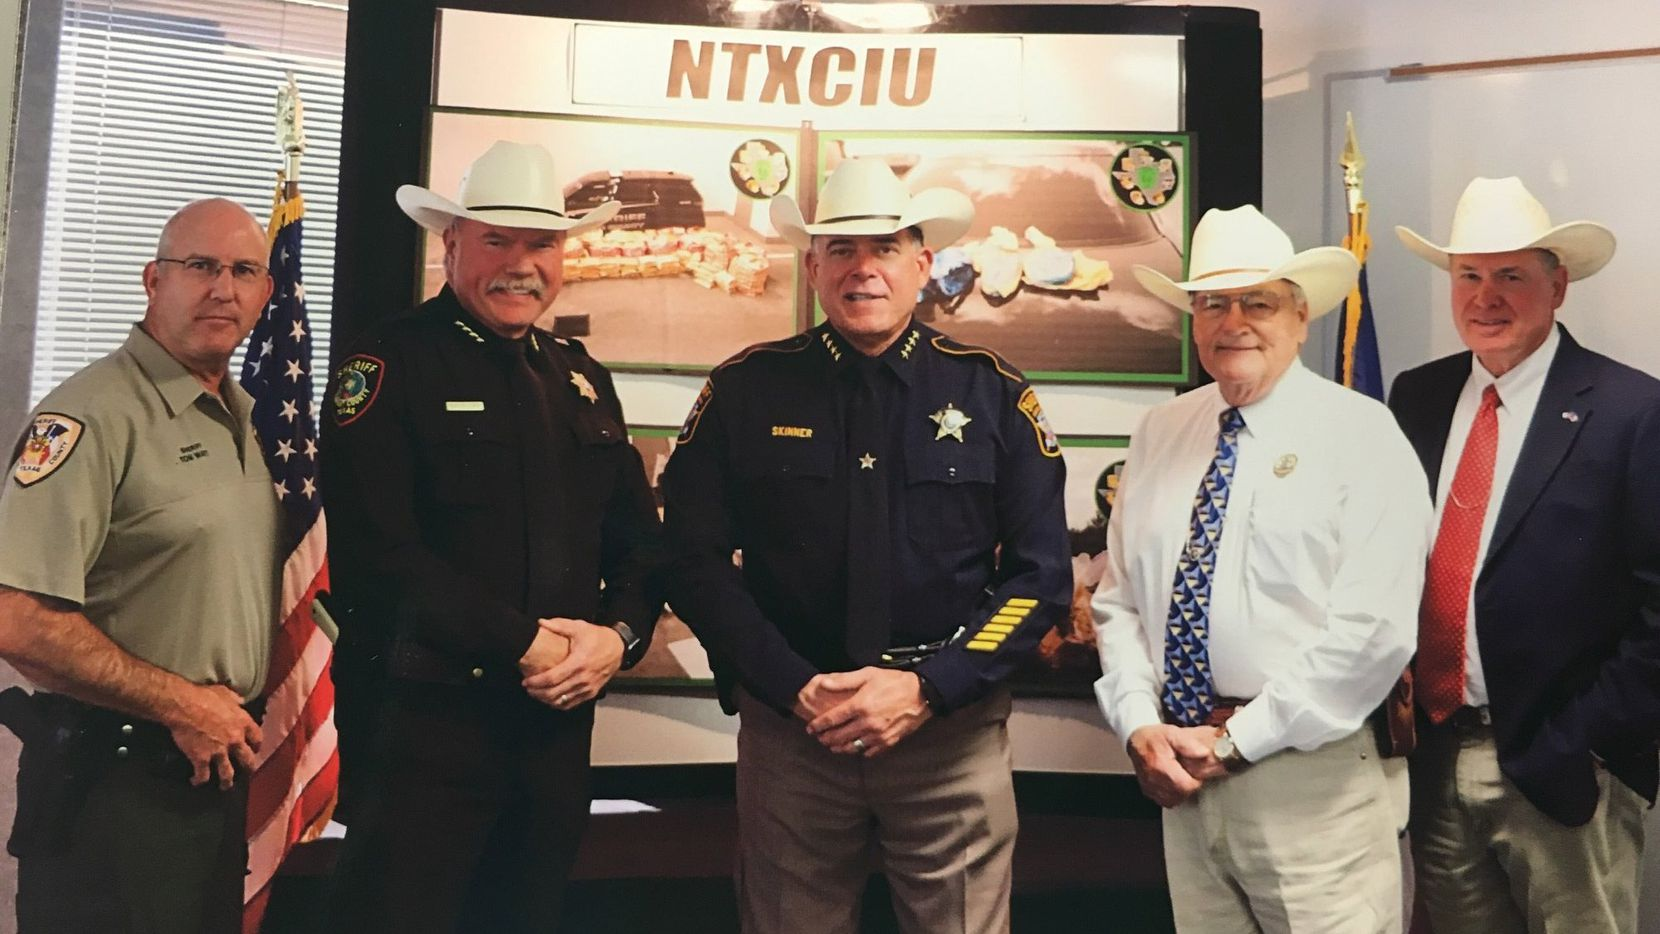 Sheriffs from seven counties have formed the North Texas Sheriff's Criminal Interdiction Unit. From left are Grayson County Sheriff Tom Watt, Tarrant County Sheriff Bill Waybourn, Collin County Sheriff Jim Skinner, Parker County Sheriff Larry Fowler and Wise County Sheriff Lane Akin. Hunt County Sheriff Randy Meeks and Rockwall County Sheriff Harold Eavenson were unable to attend Wednesday's announcement.